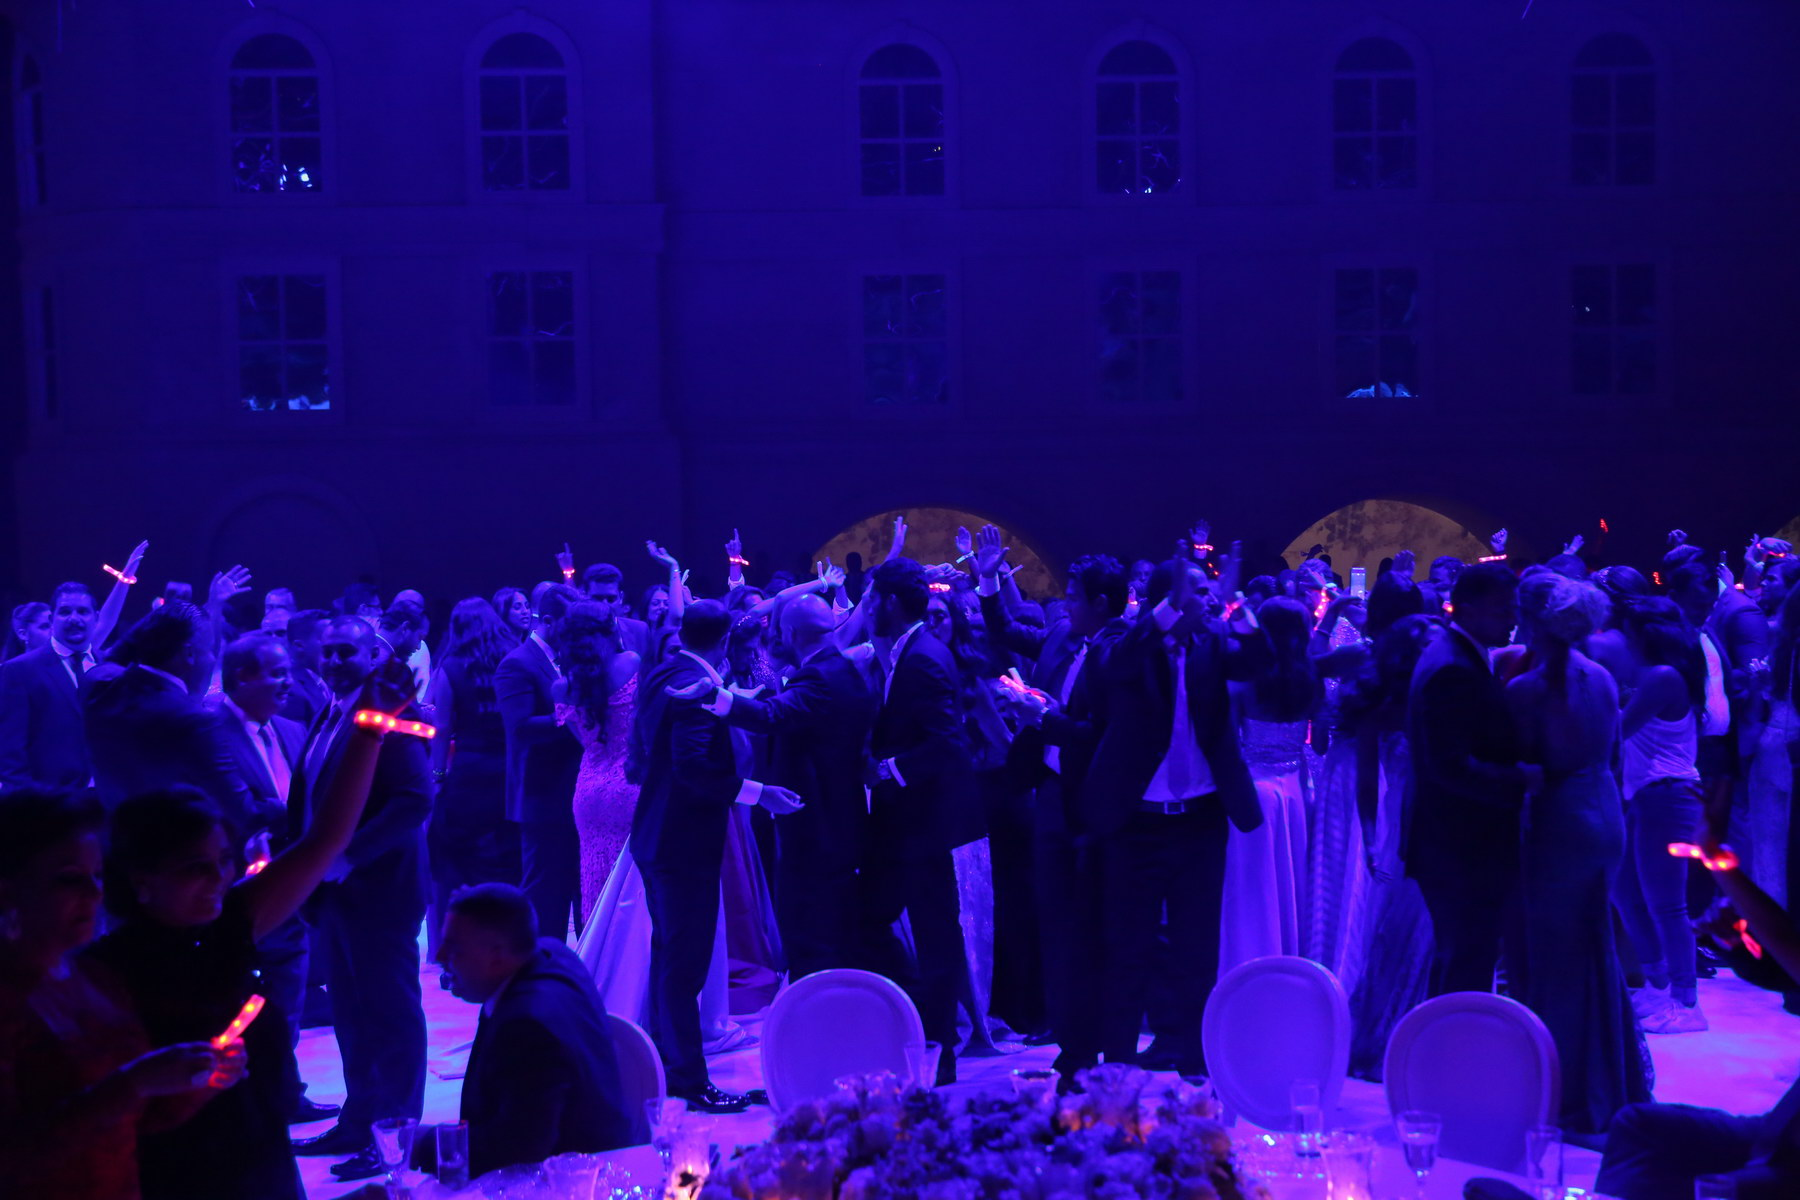 Lebanon - Wedding party